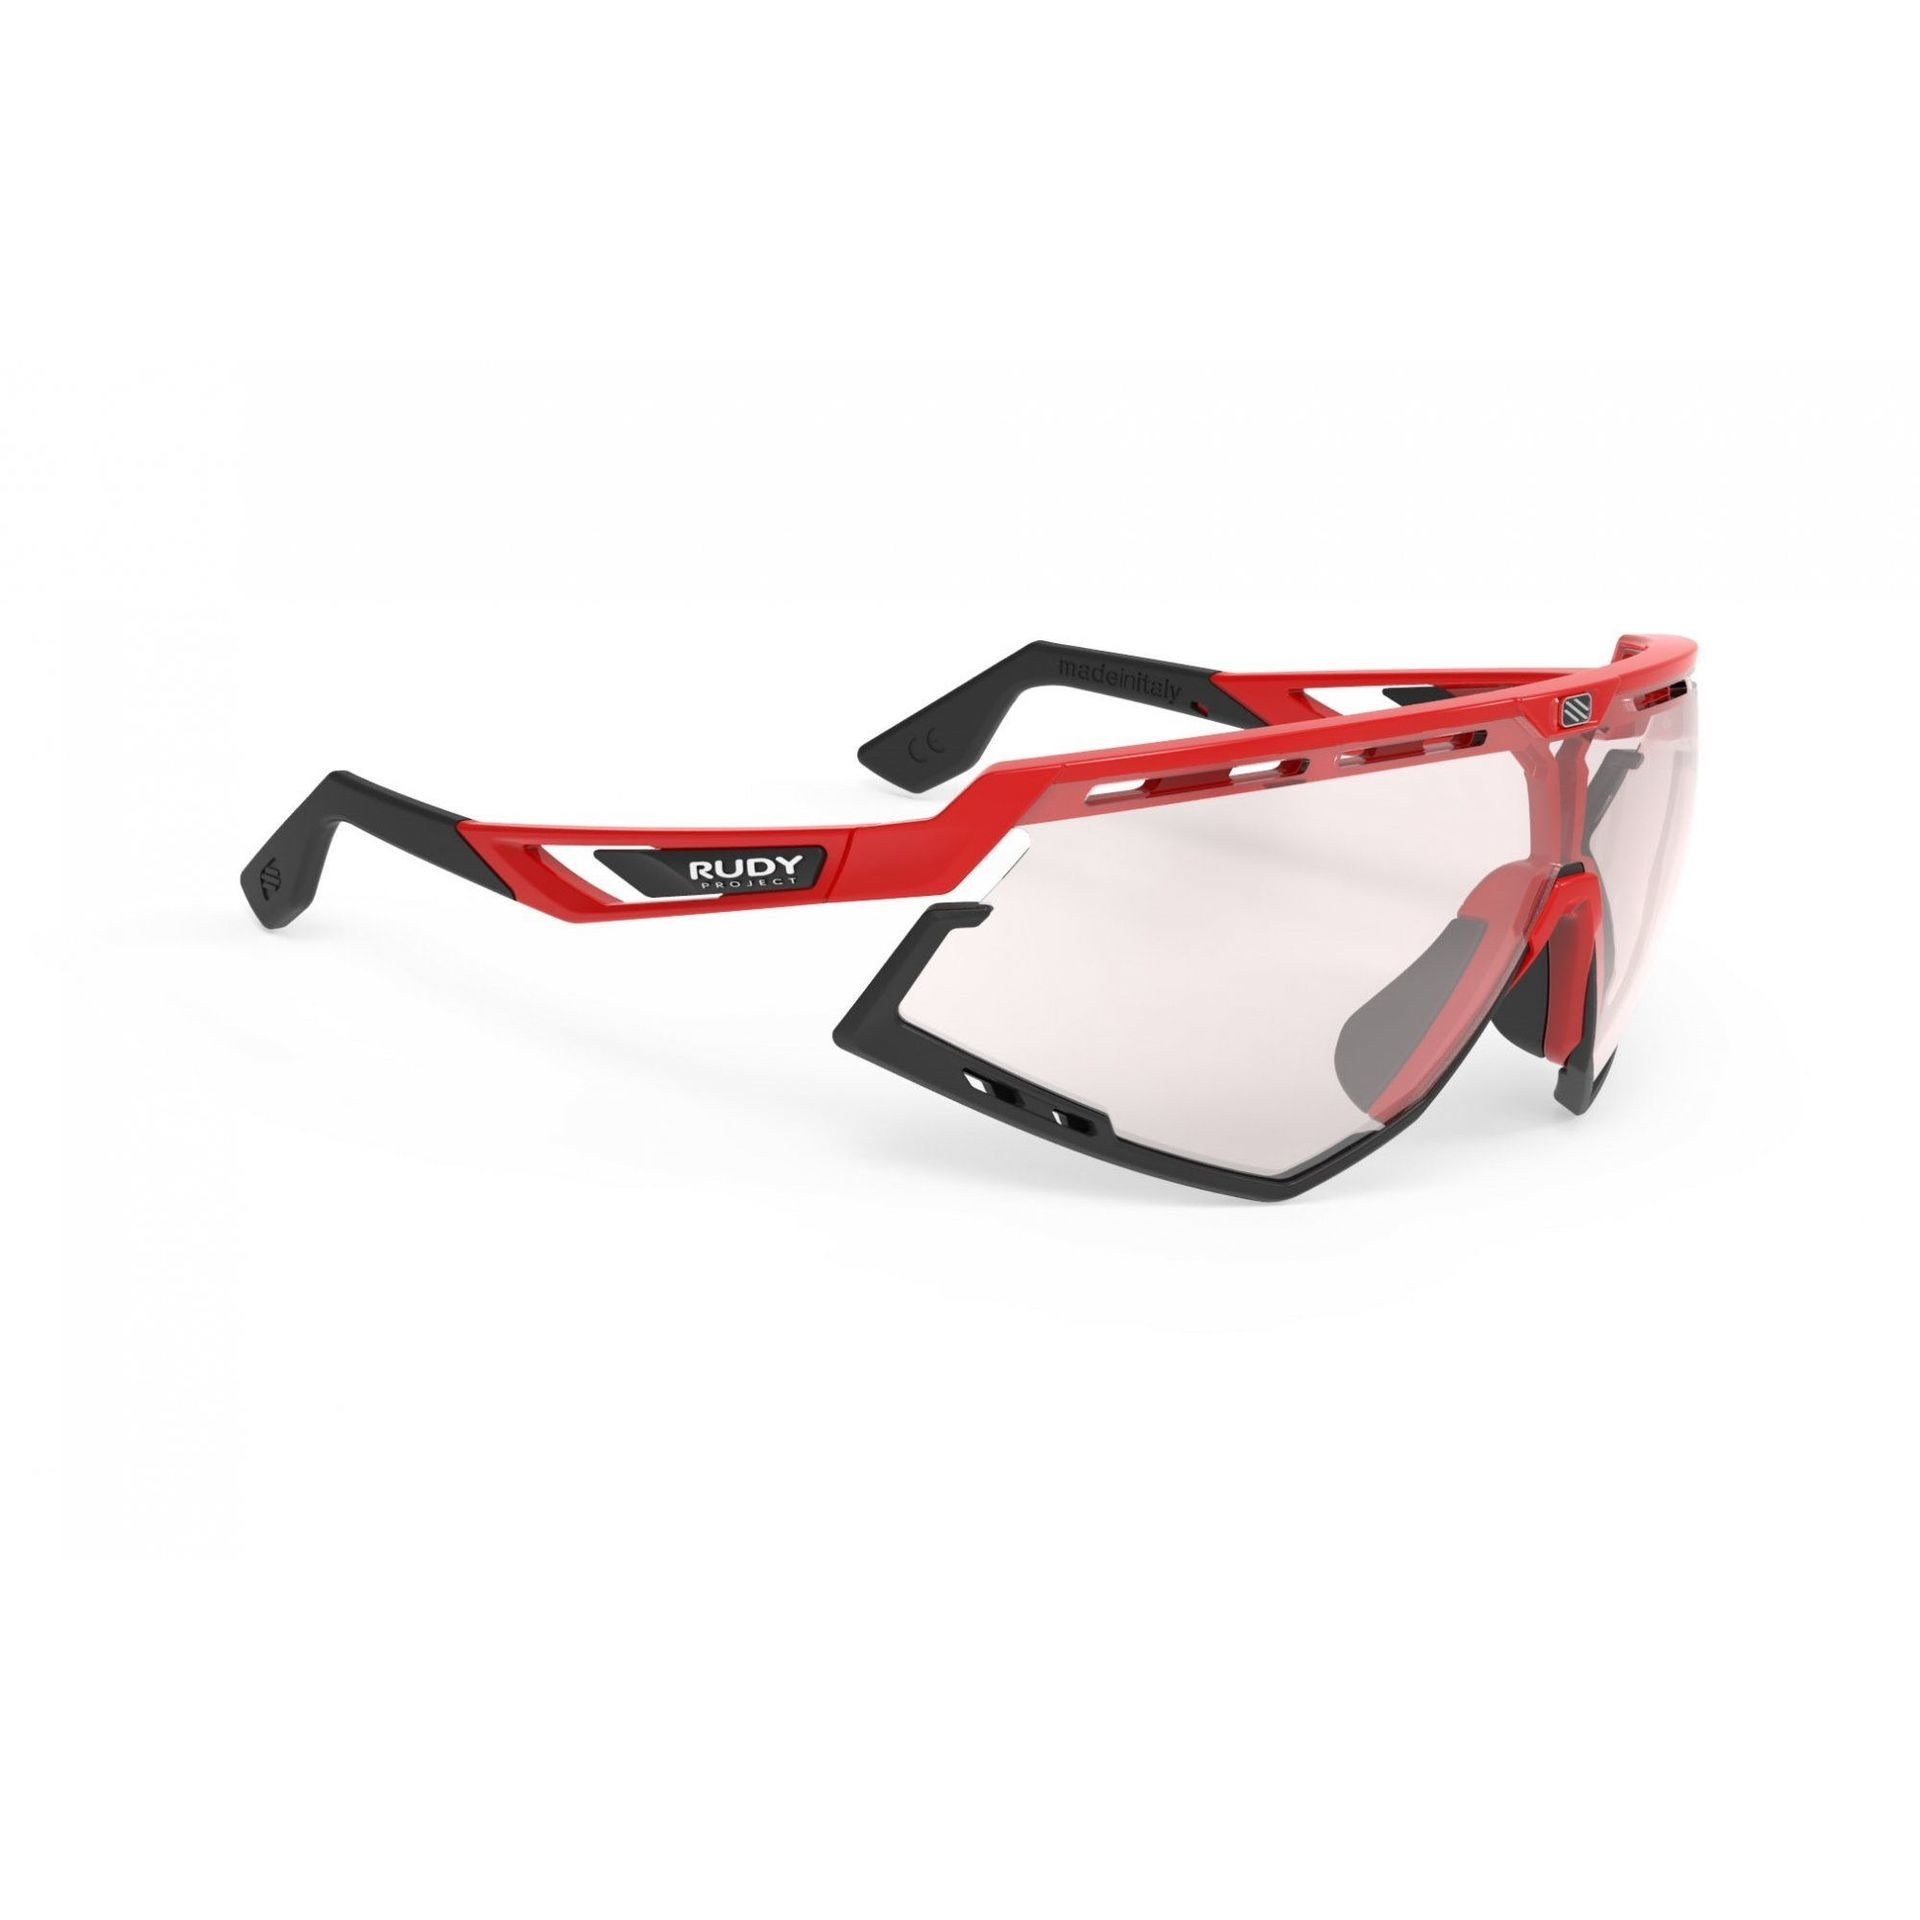 OKULARY RUDY PROJECT DEFENDER FIRE RED|BLACK + IMPACTX PHOTOCHROMIC 2LASERRED SP528945 1